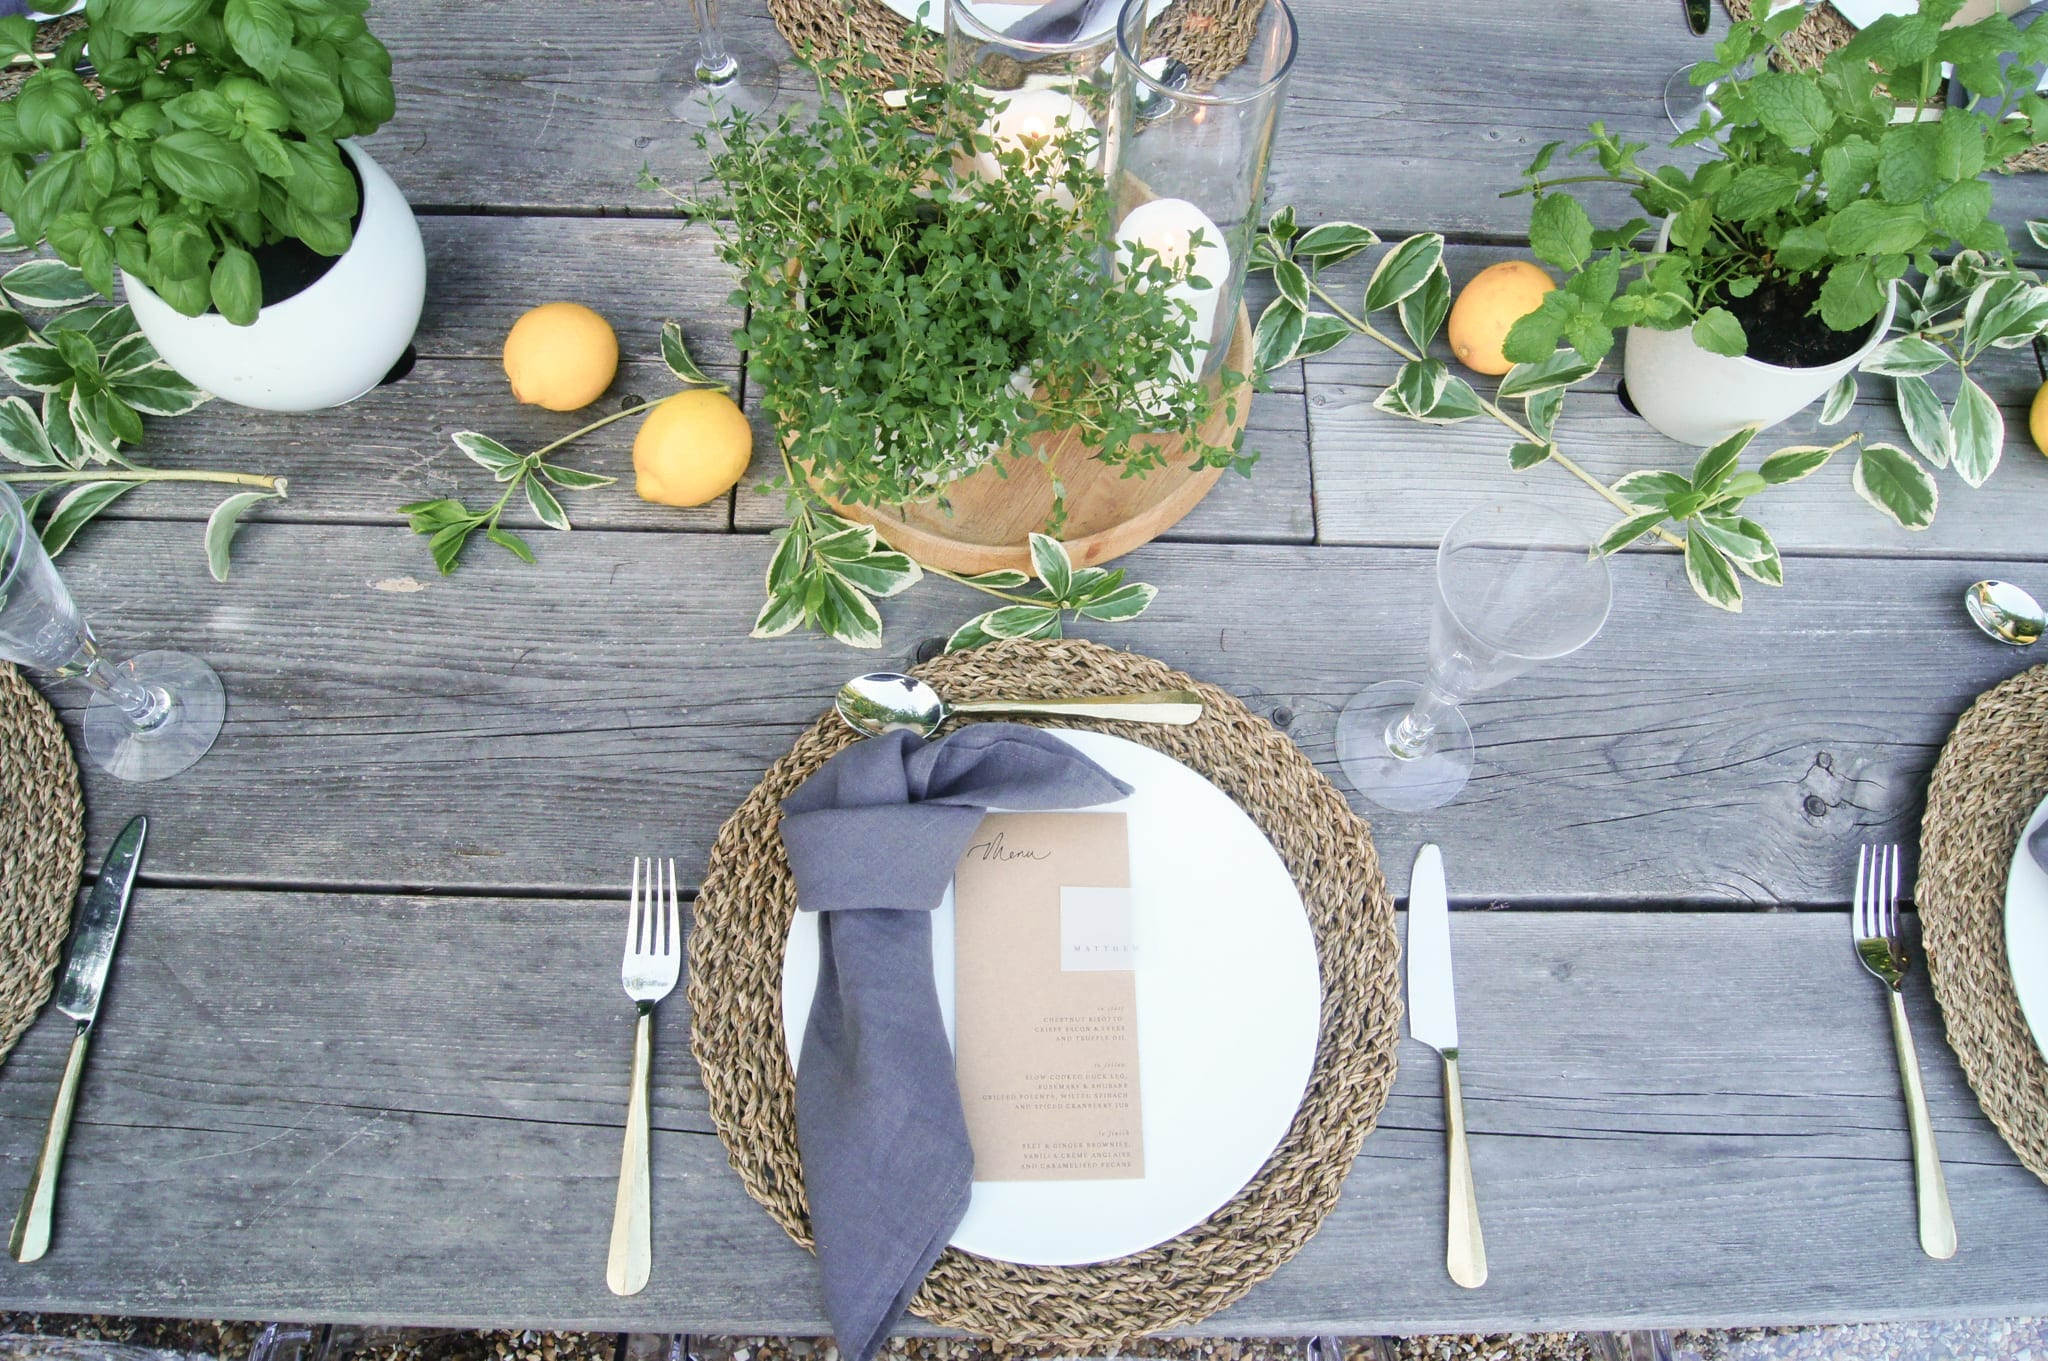 Table setting with herbs and grey napkin